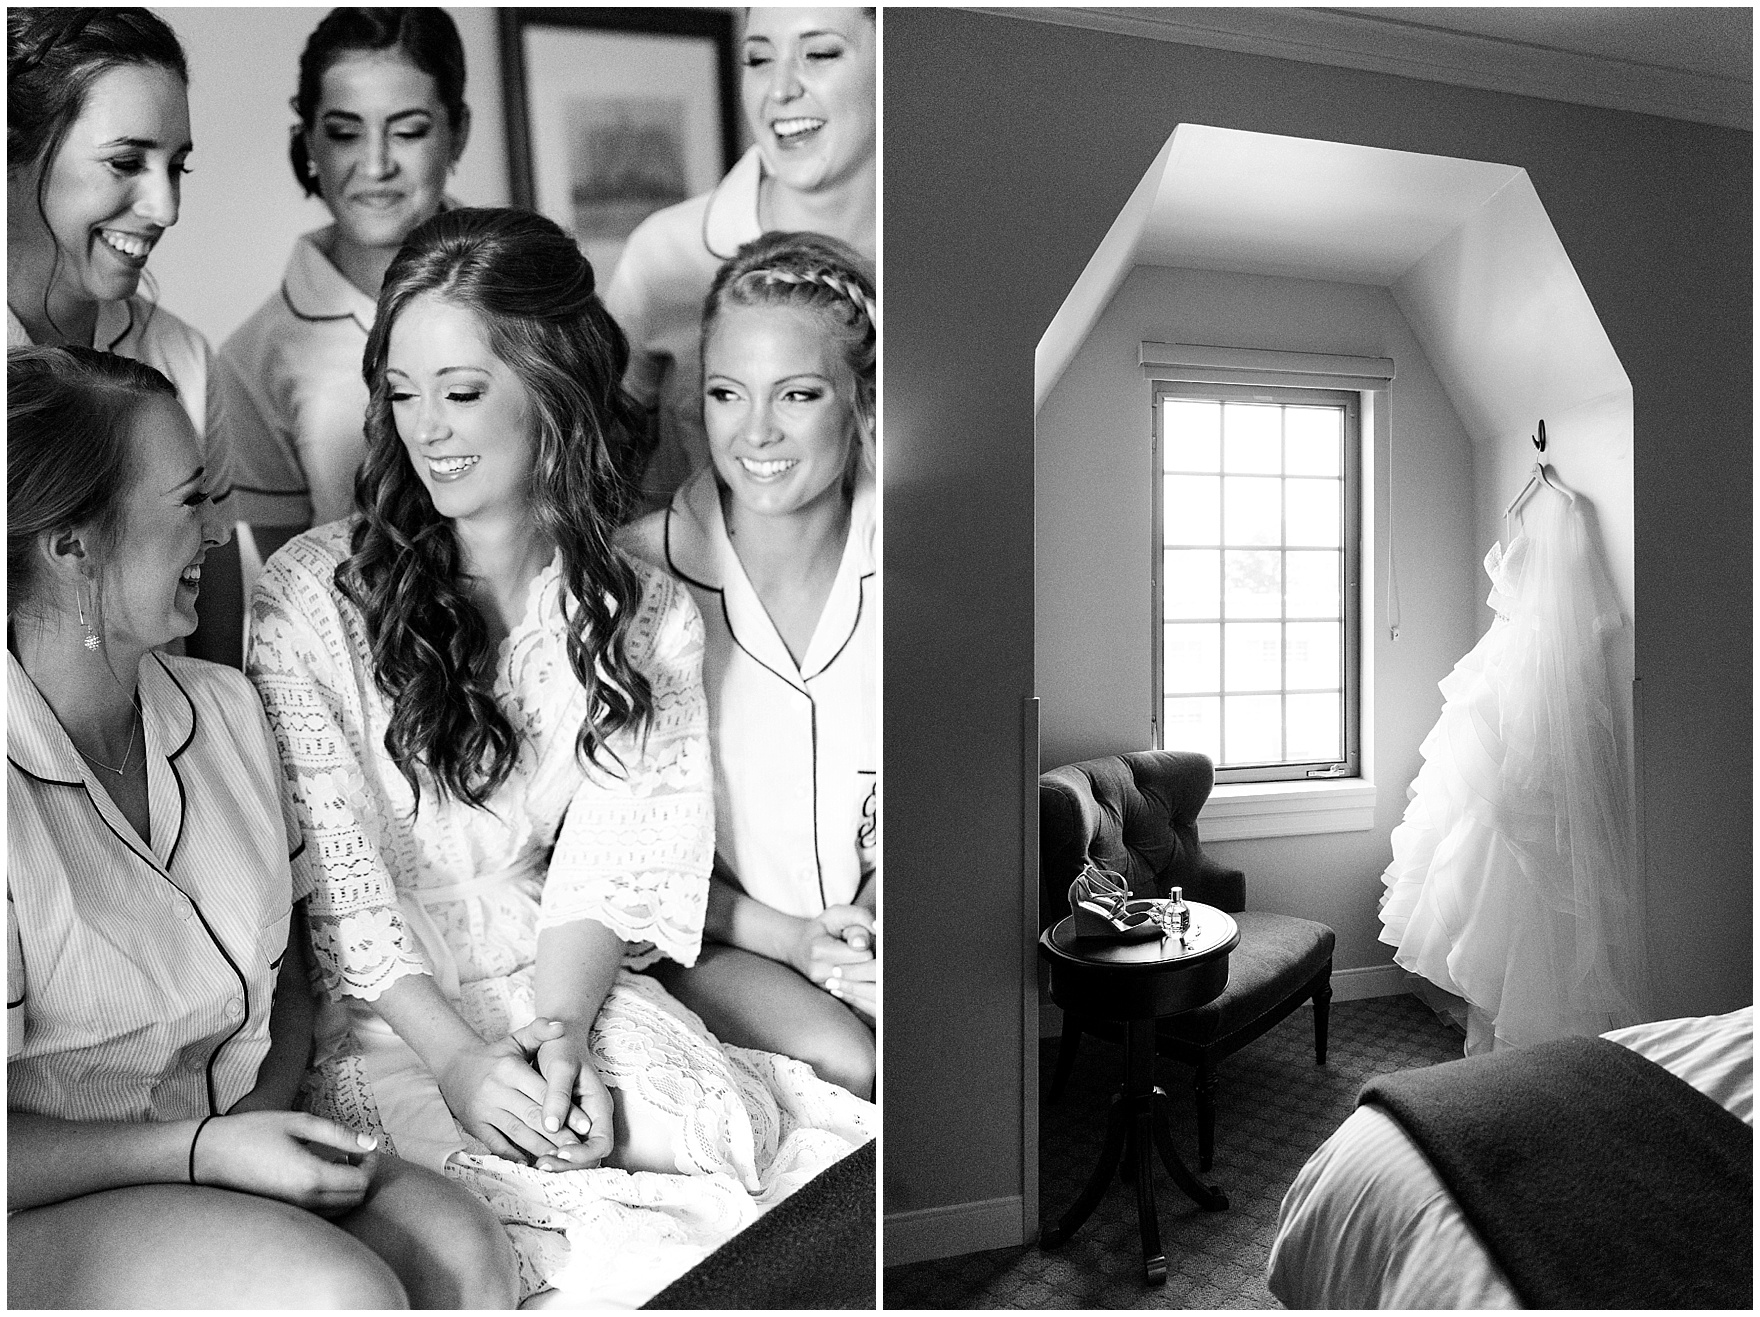 The bride and her bridesmaids get ready at the Morris Inn for a University of Notre Dame Wedding.